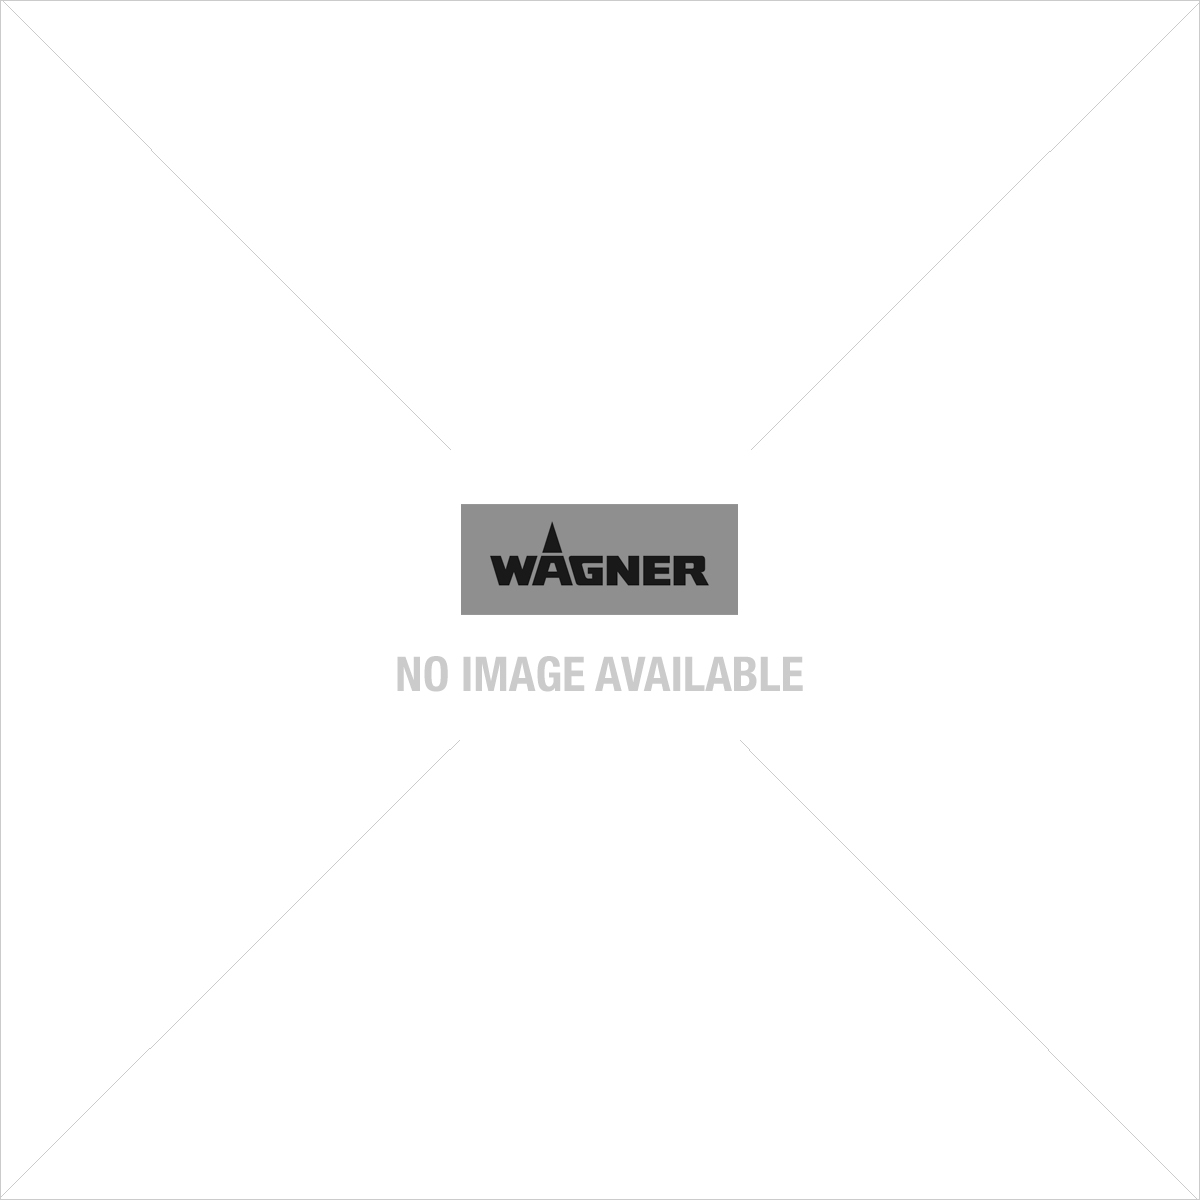 Wagner Project Pro 119 Airless